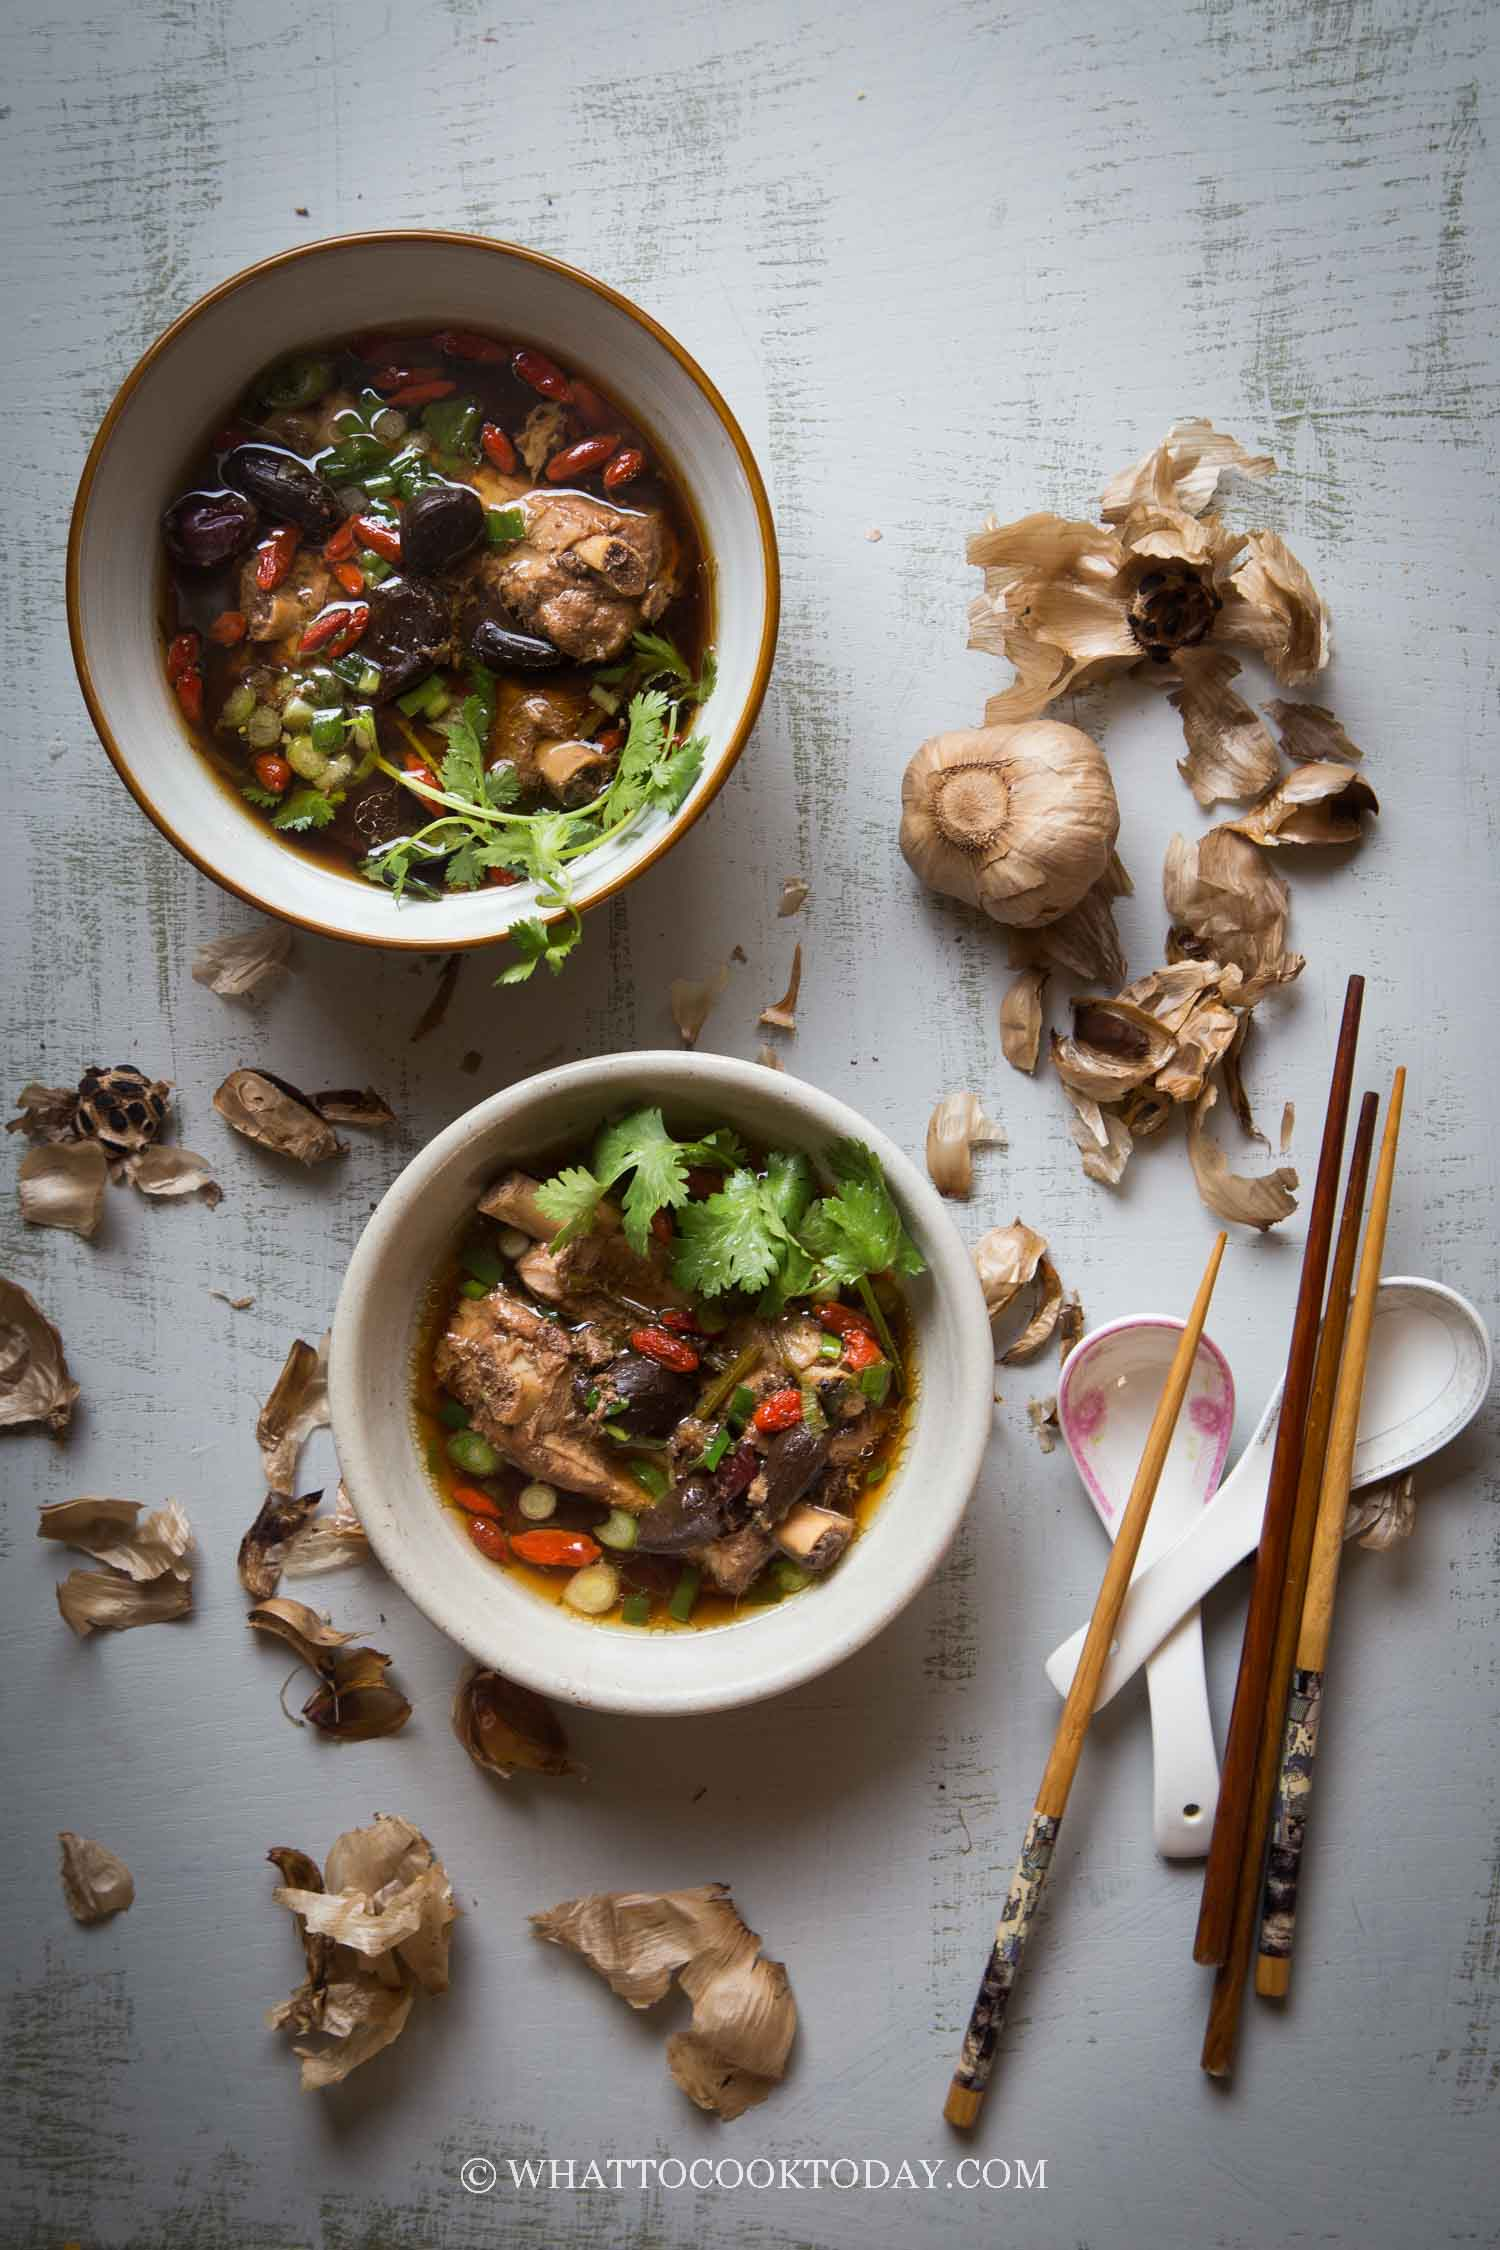 Pressure Cooker Black Garlic Pork Ribs Soup - Comforting and hearty pork ribs soup is flavored with the aromatic and sweet black garlic and Chinese herbs. This is an easy no-fuss soup recipe perfect for everyday home cooking.